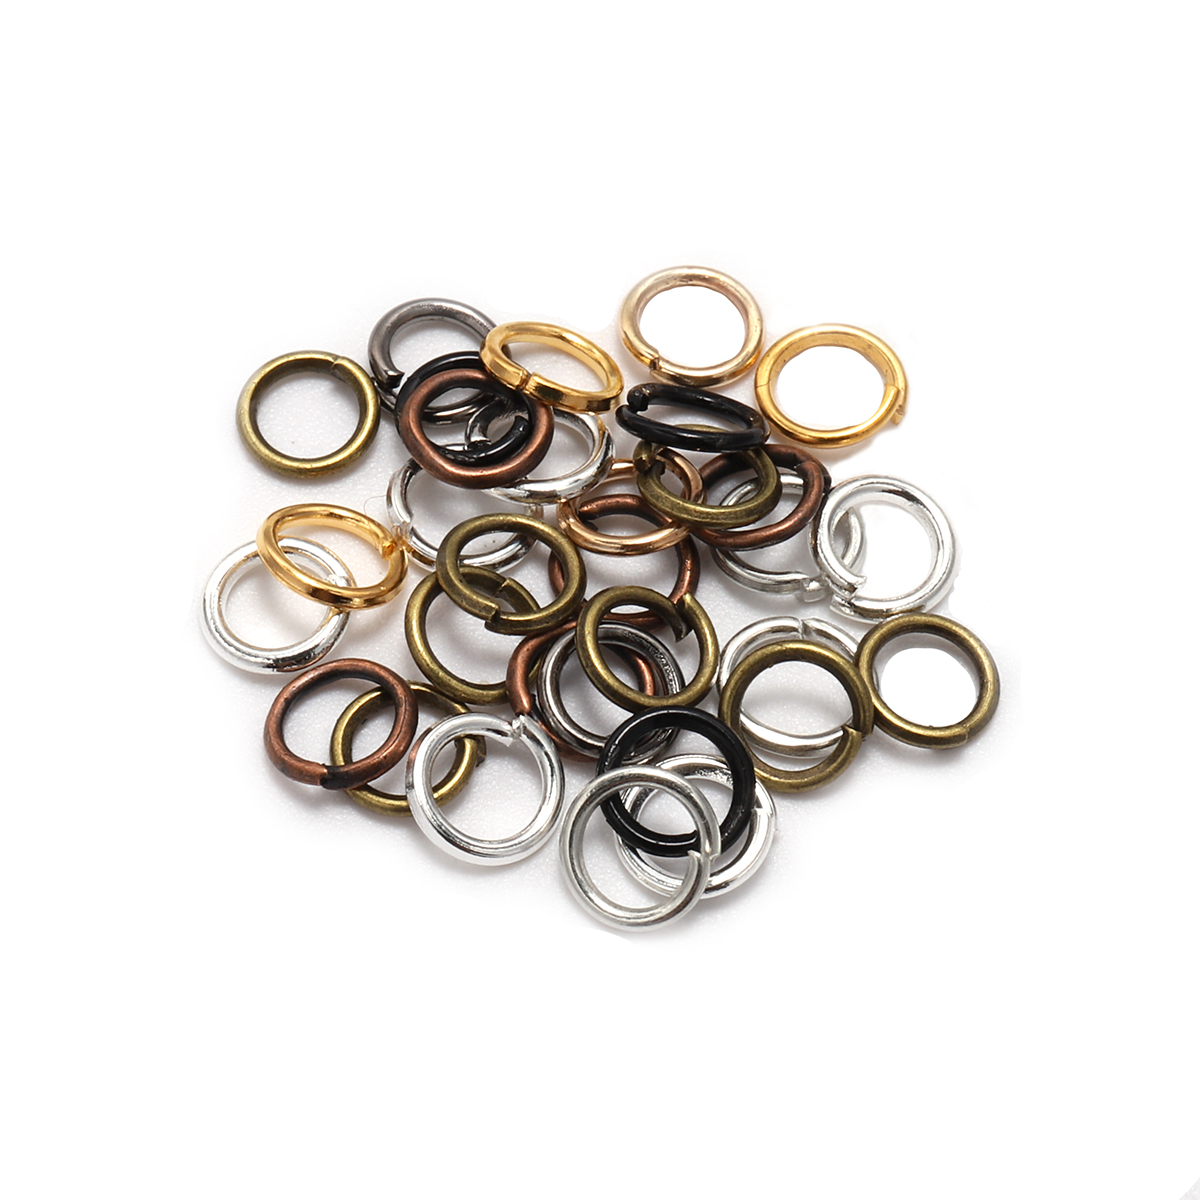 200pcs/bag 4 5 6 Mm Link Loop Wholesale Vintage Bronze Jump Rings Split Ring Connectors For Diy Jewelry Finding Making Connector